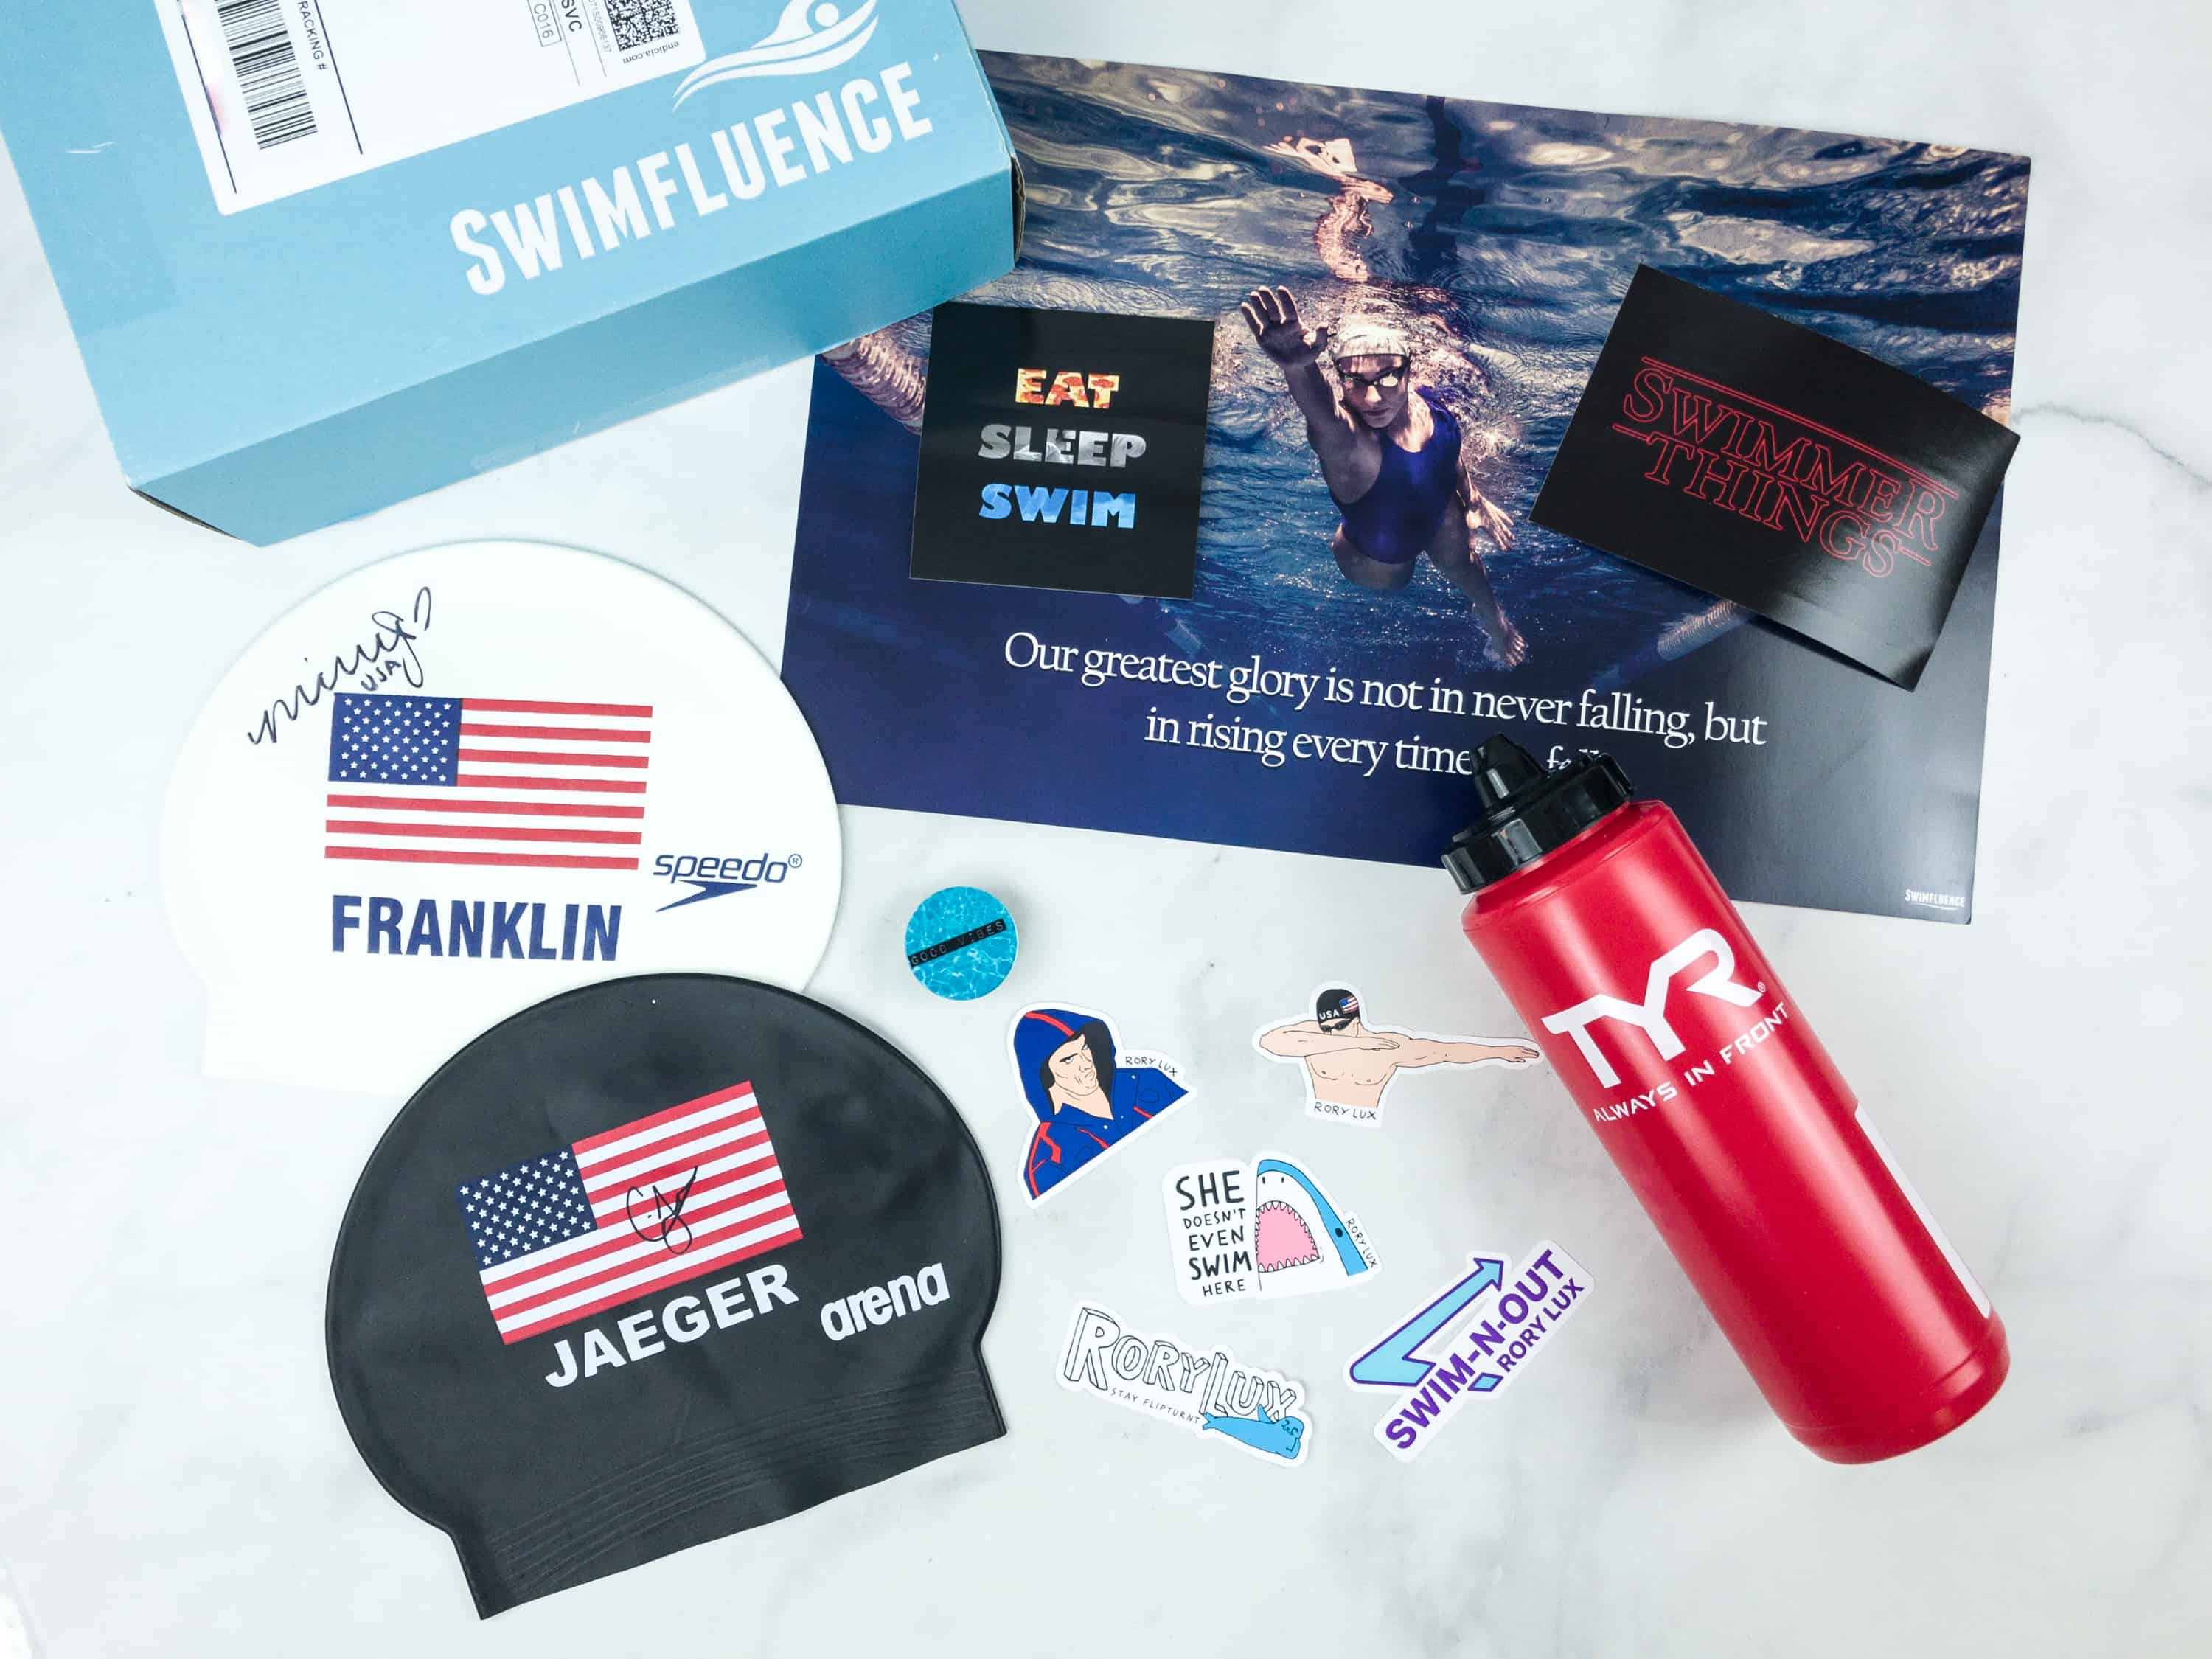 Swimfluence July 2018 Subscription Box Review